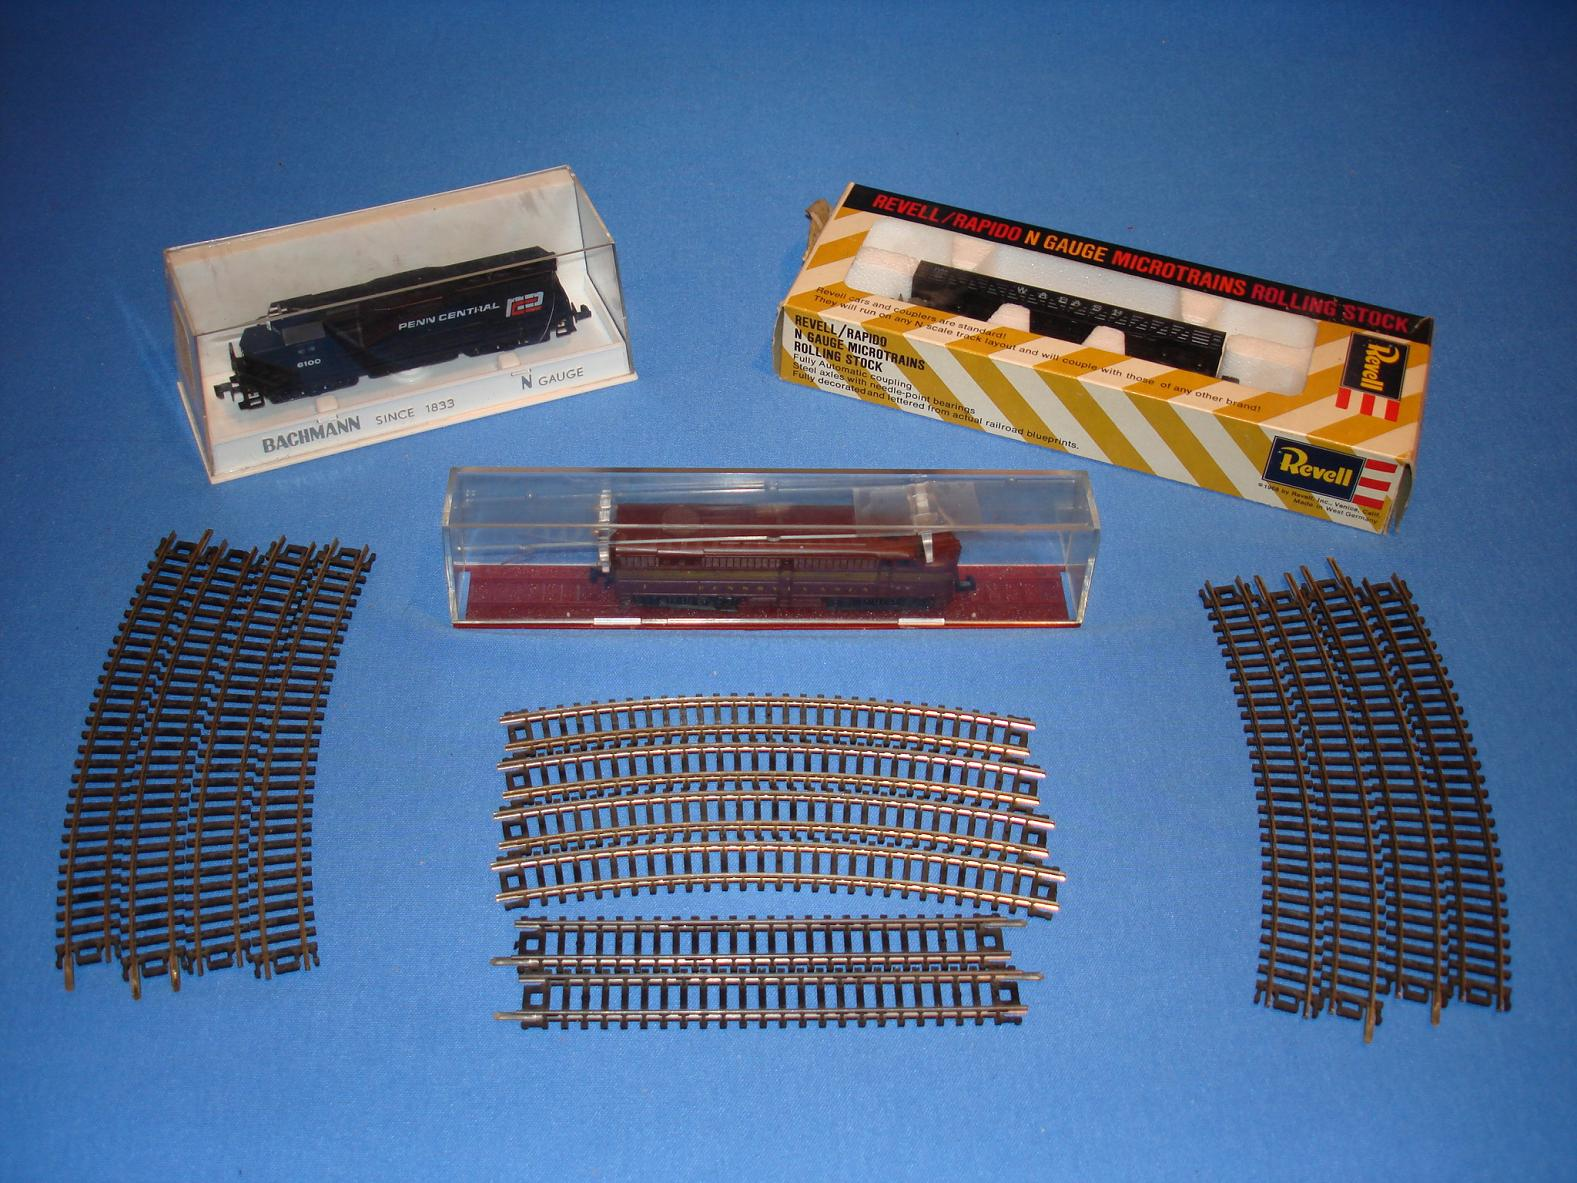 N Gauge Model Train Assortment